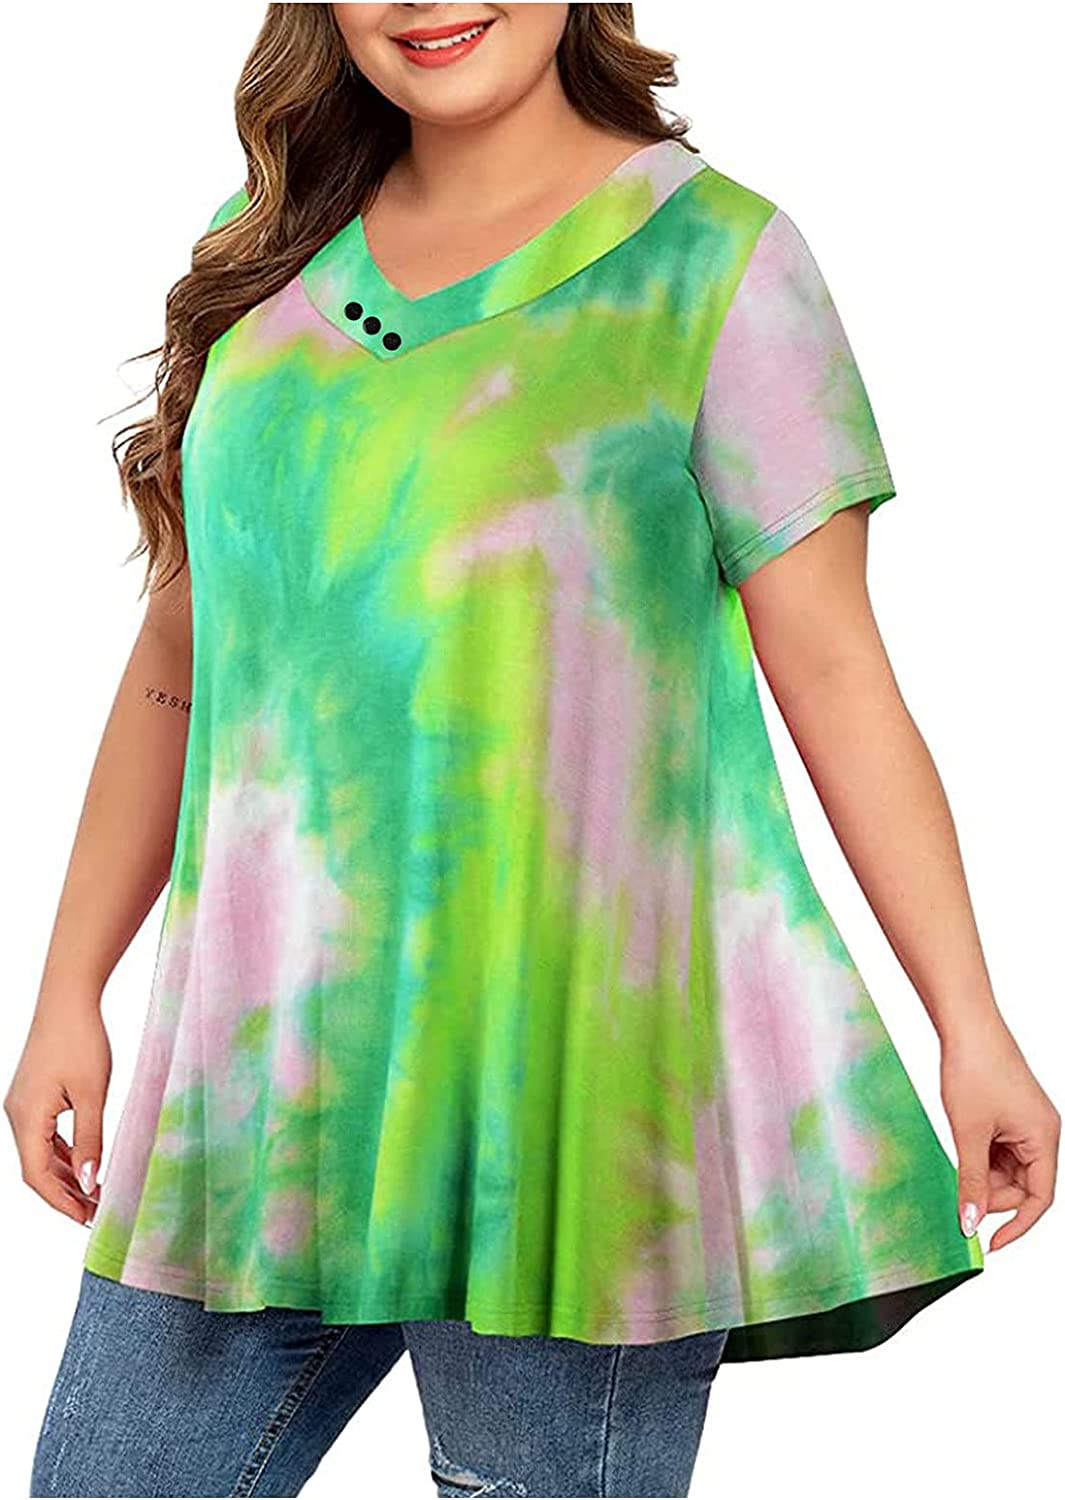 Plus Size Tops for Women Tie Dye Shirt Loose Comfy Blouse Tees V Neck T Shirts Summer Tunic Casual Pullover